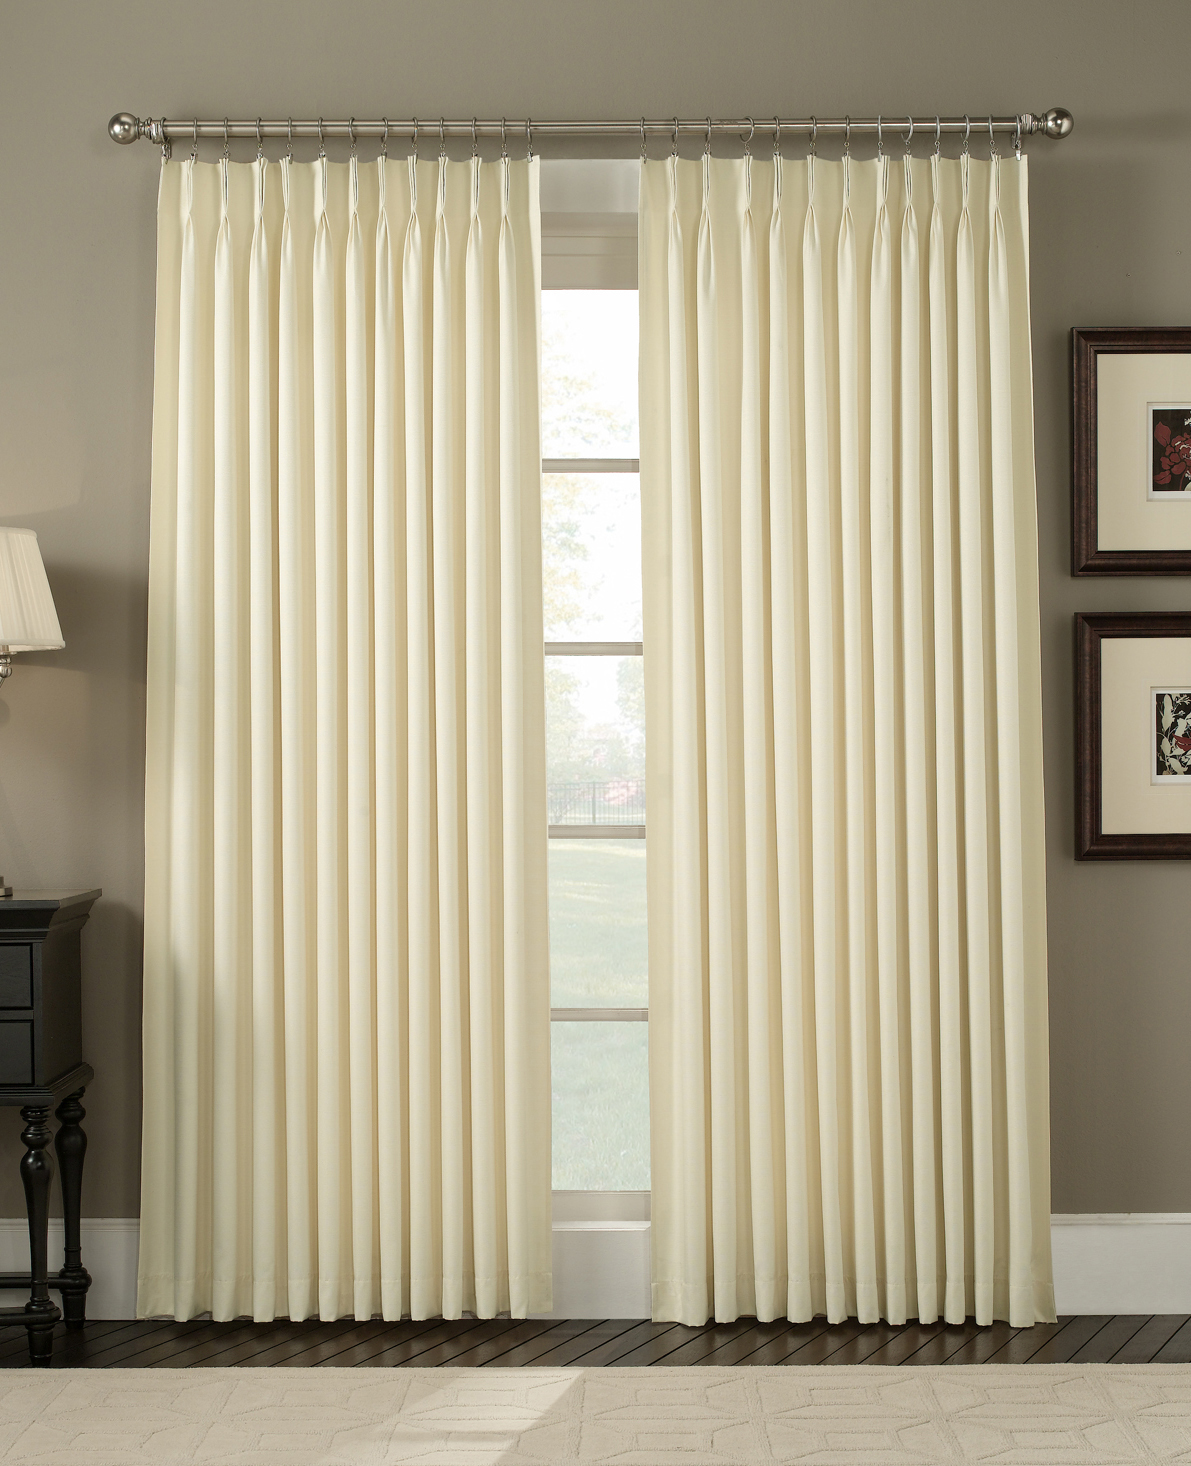 Remarkable Living Room Window Curtains 1191 x 1466 · 996 kB · jpeg